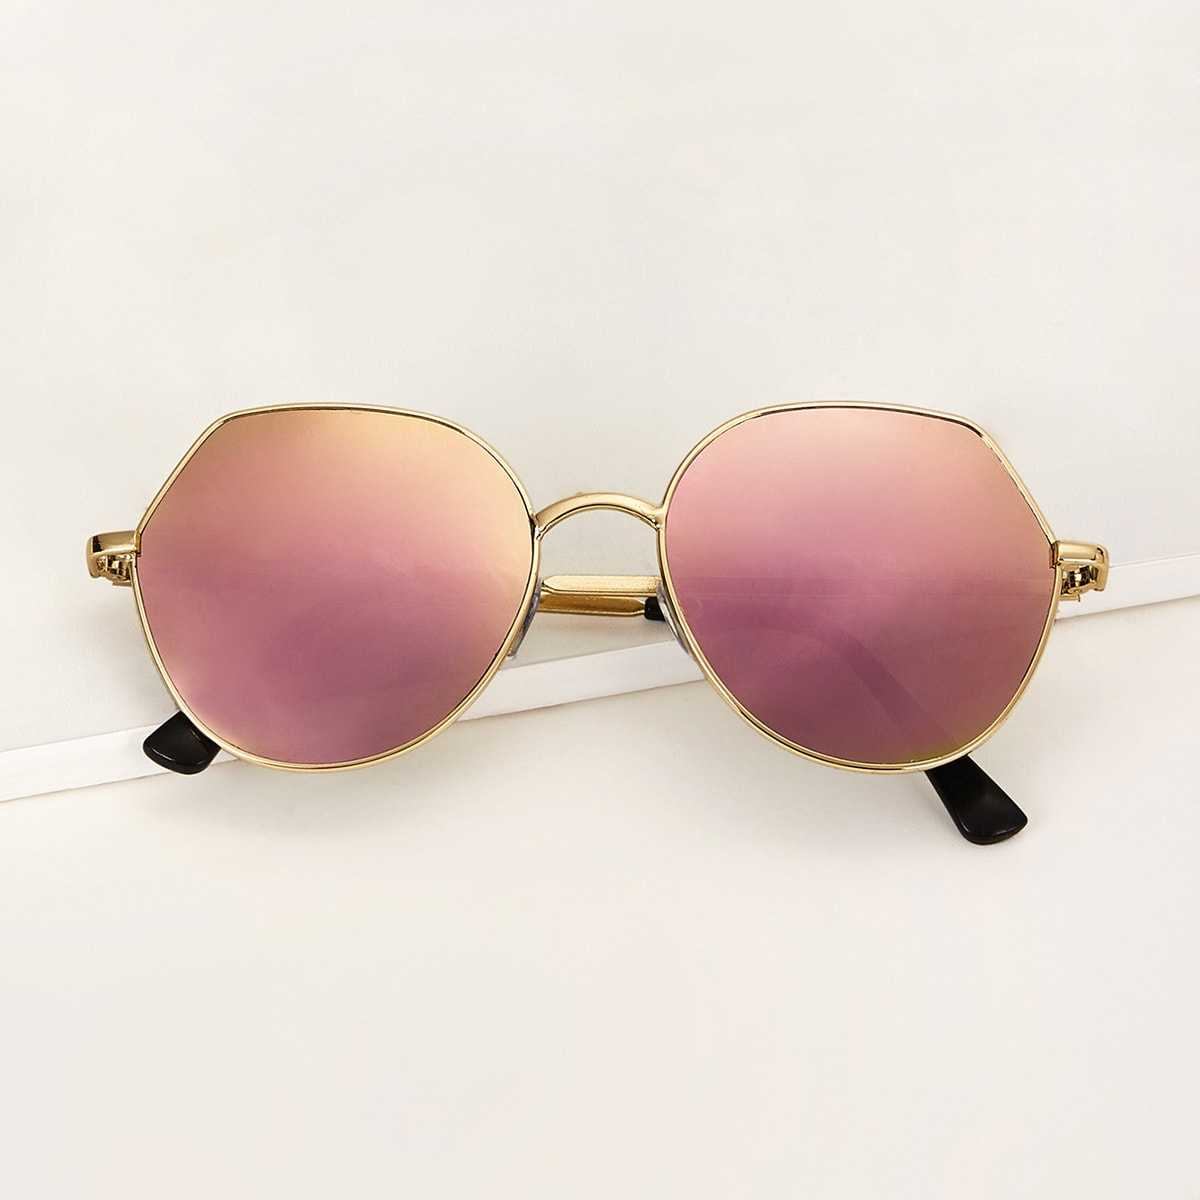 Metal Frame Mirror Lens Sunglasses in Multicolor by ROMWE on GOOFASH